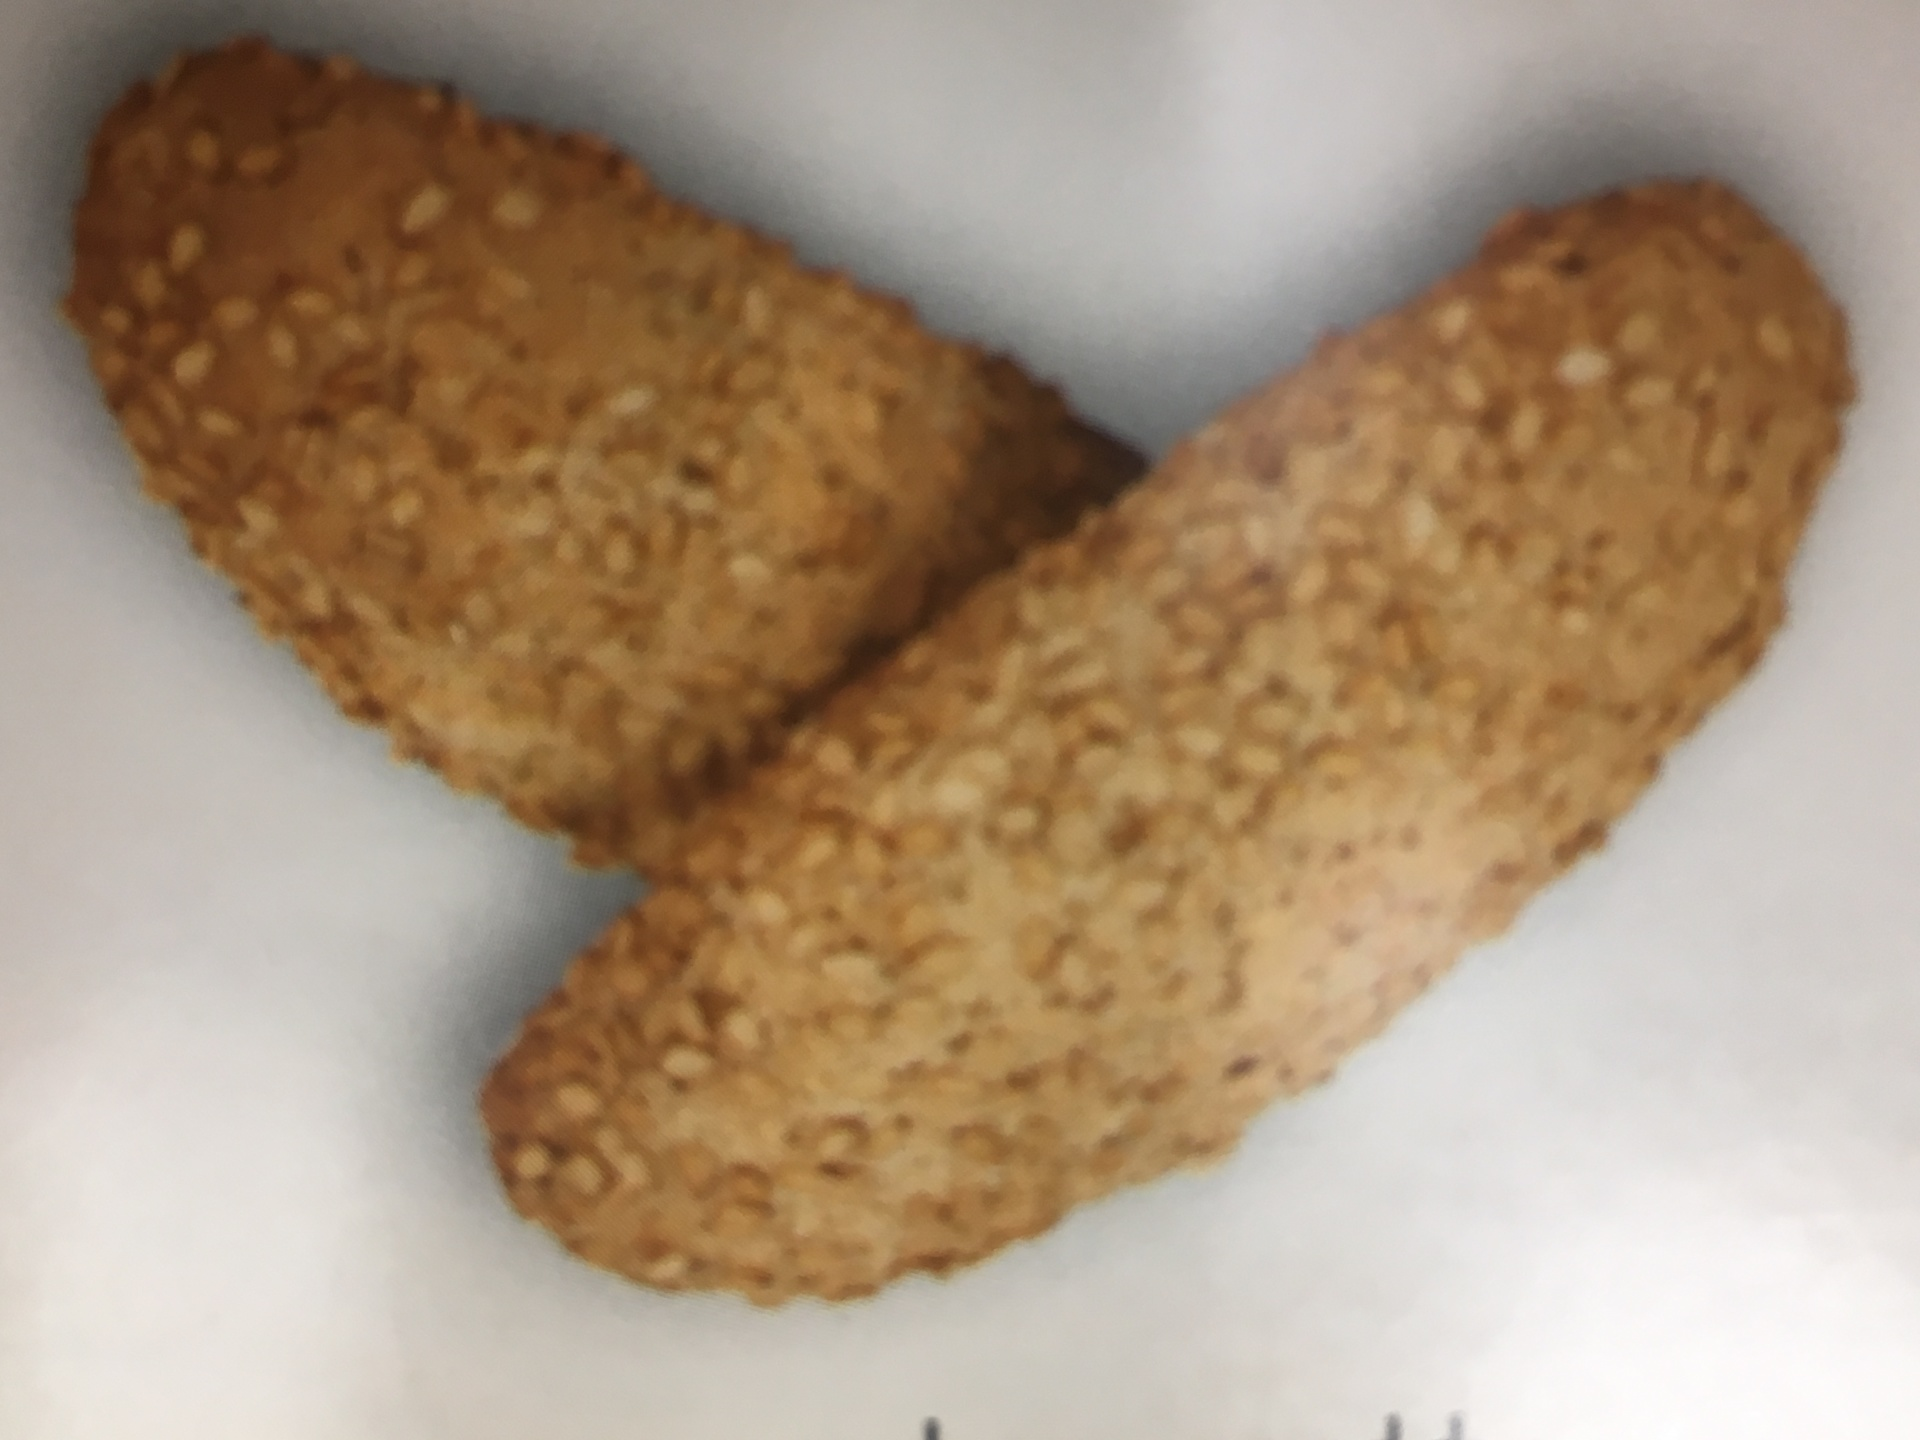 Sweet Biscotti Handrolled in Sesame Seeds